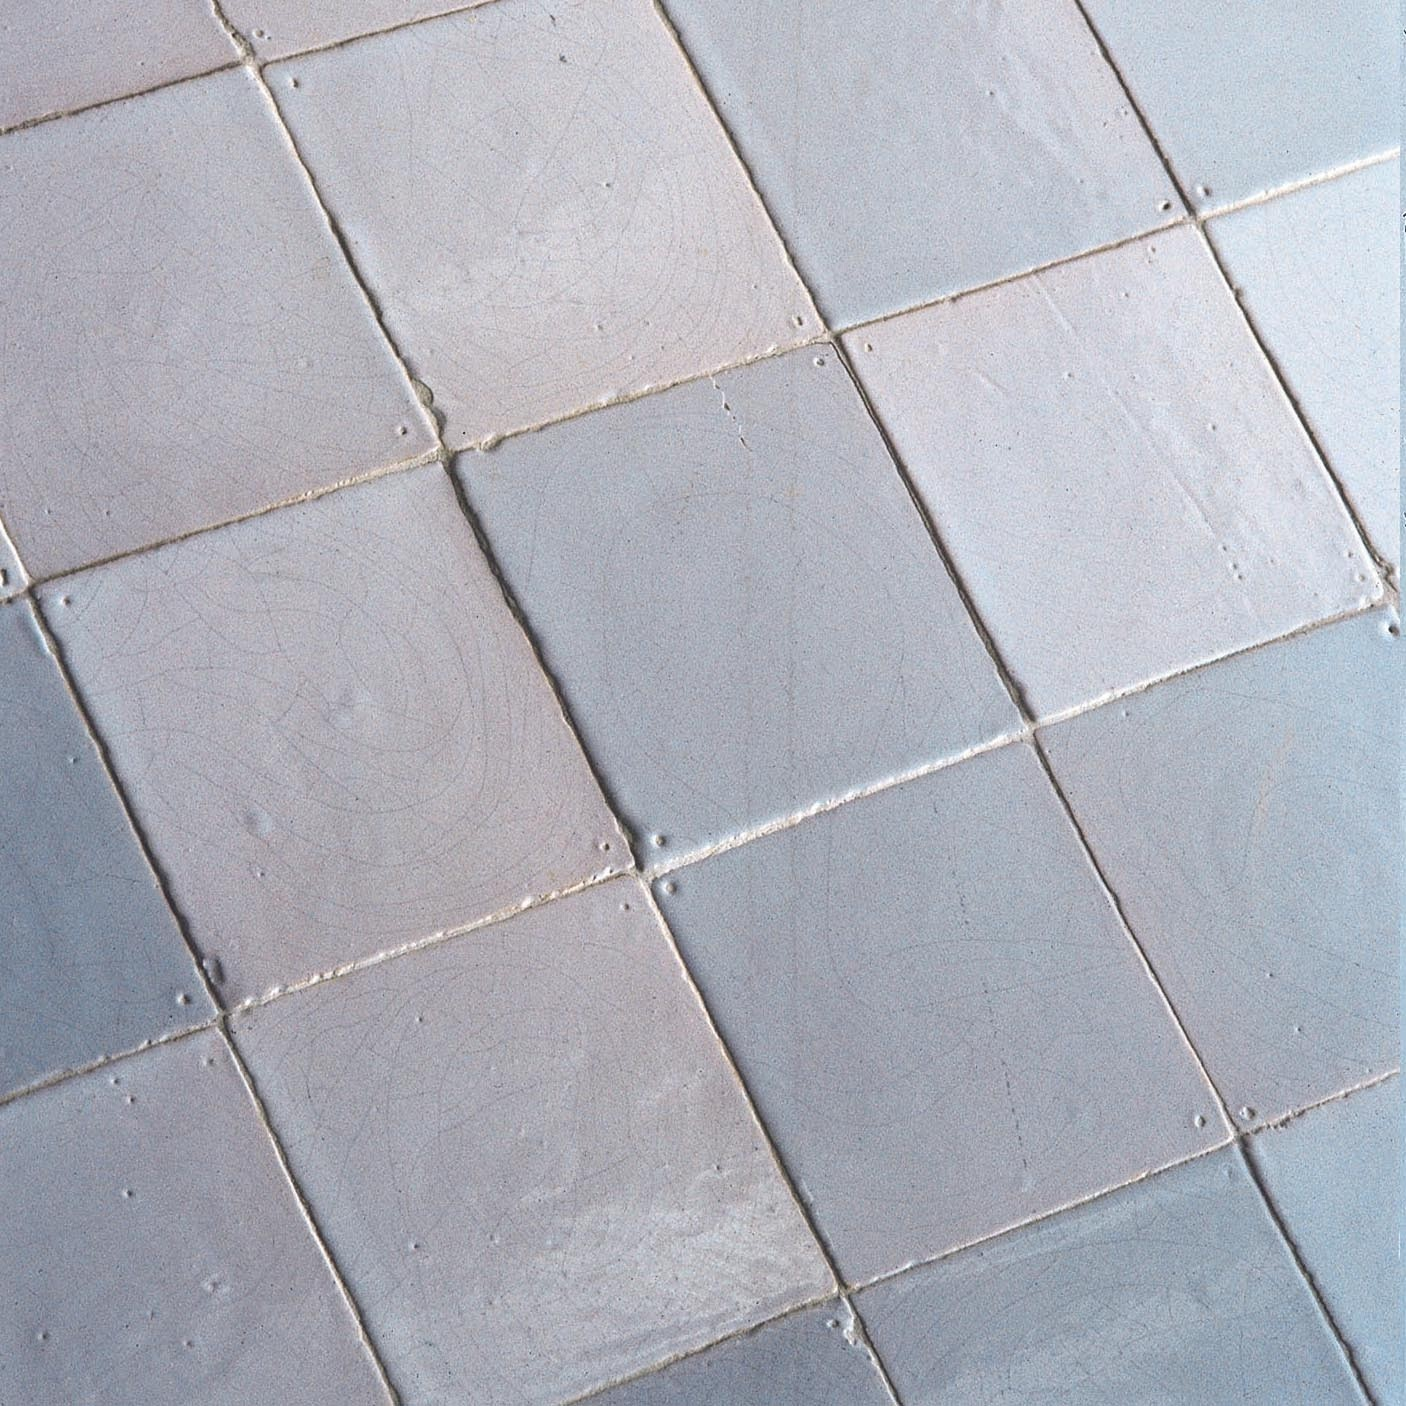 """Handmade Dutch tiles or so-called """"witjes"""" in various shades of white"""